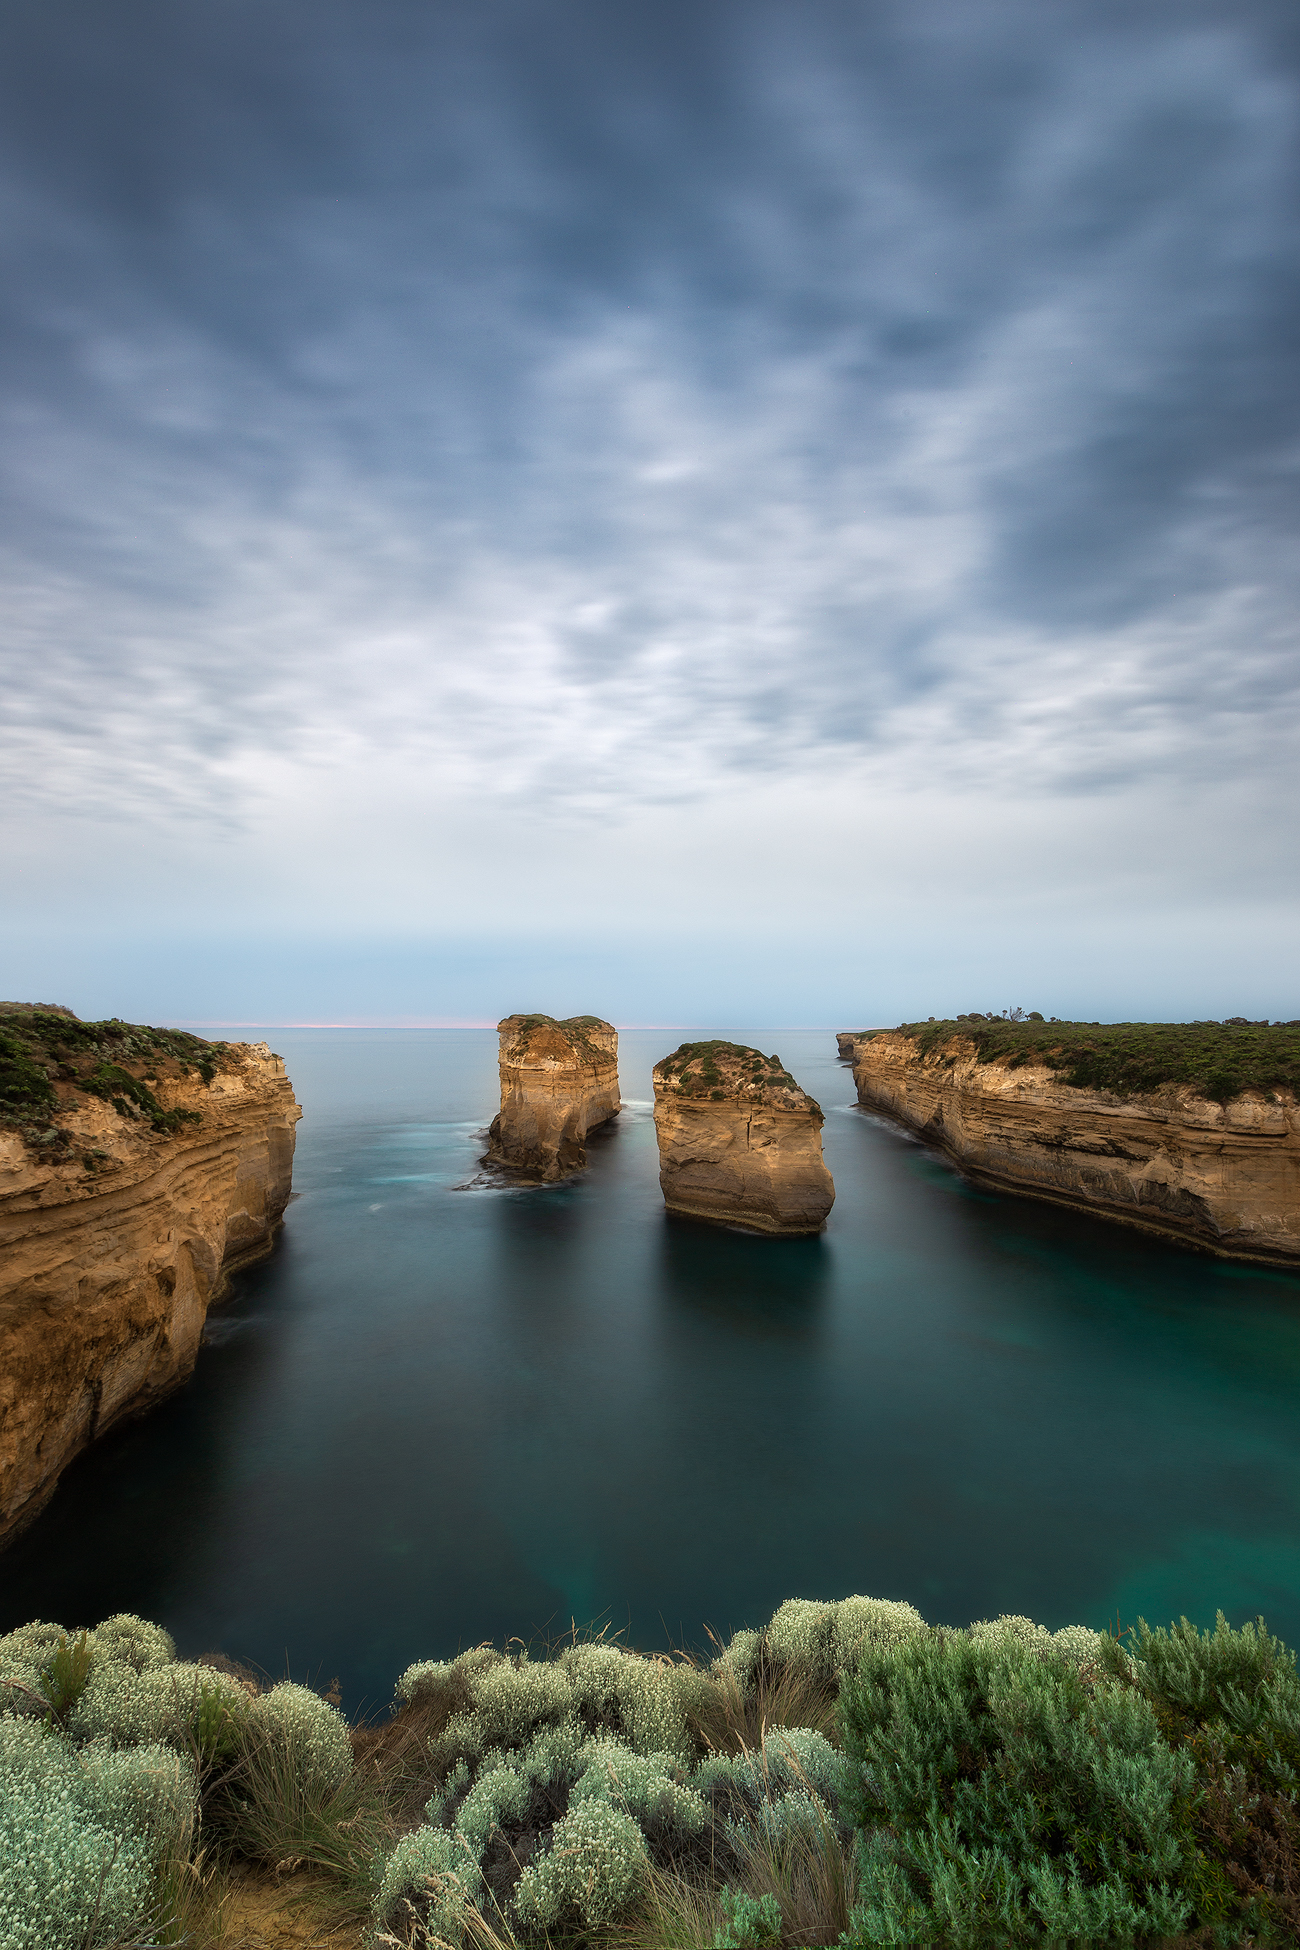 Tom and Eva Sunset - Loch Ard Gorge, Great Ocean Road, Australia | Holiday with We Are Raw Photography Tours